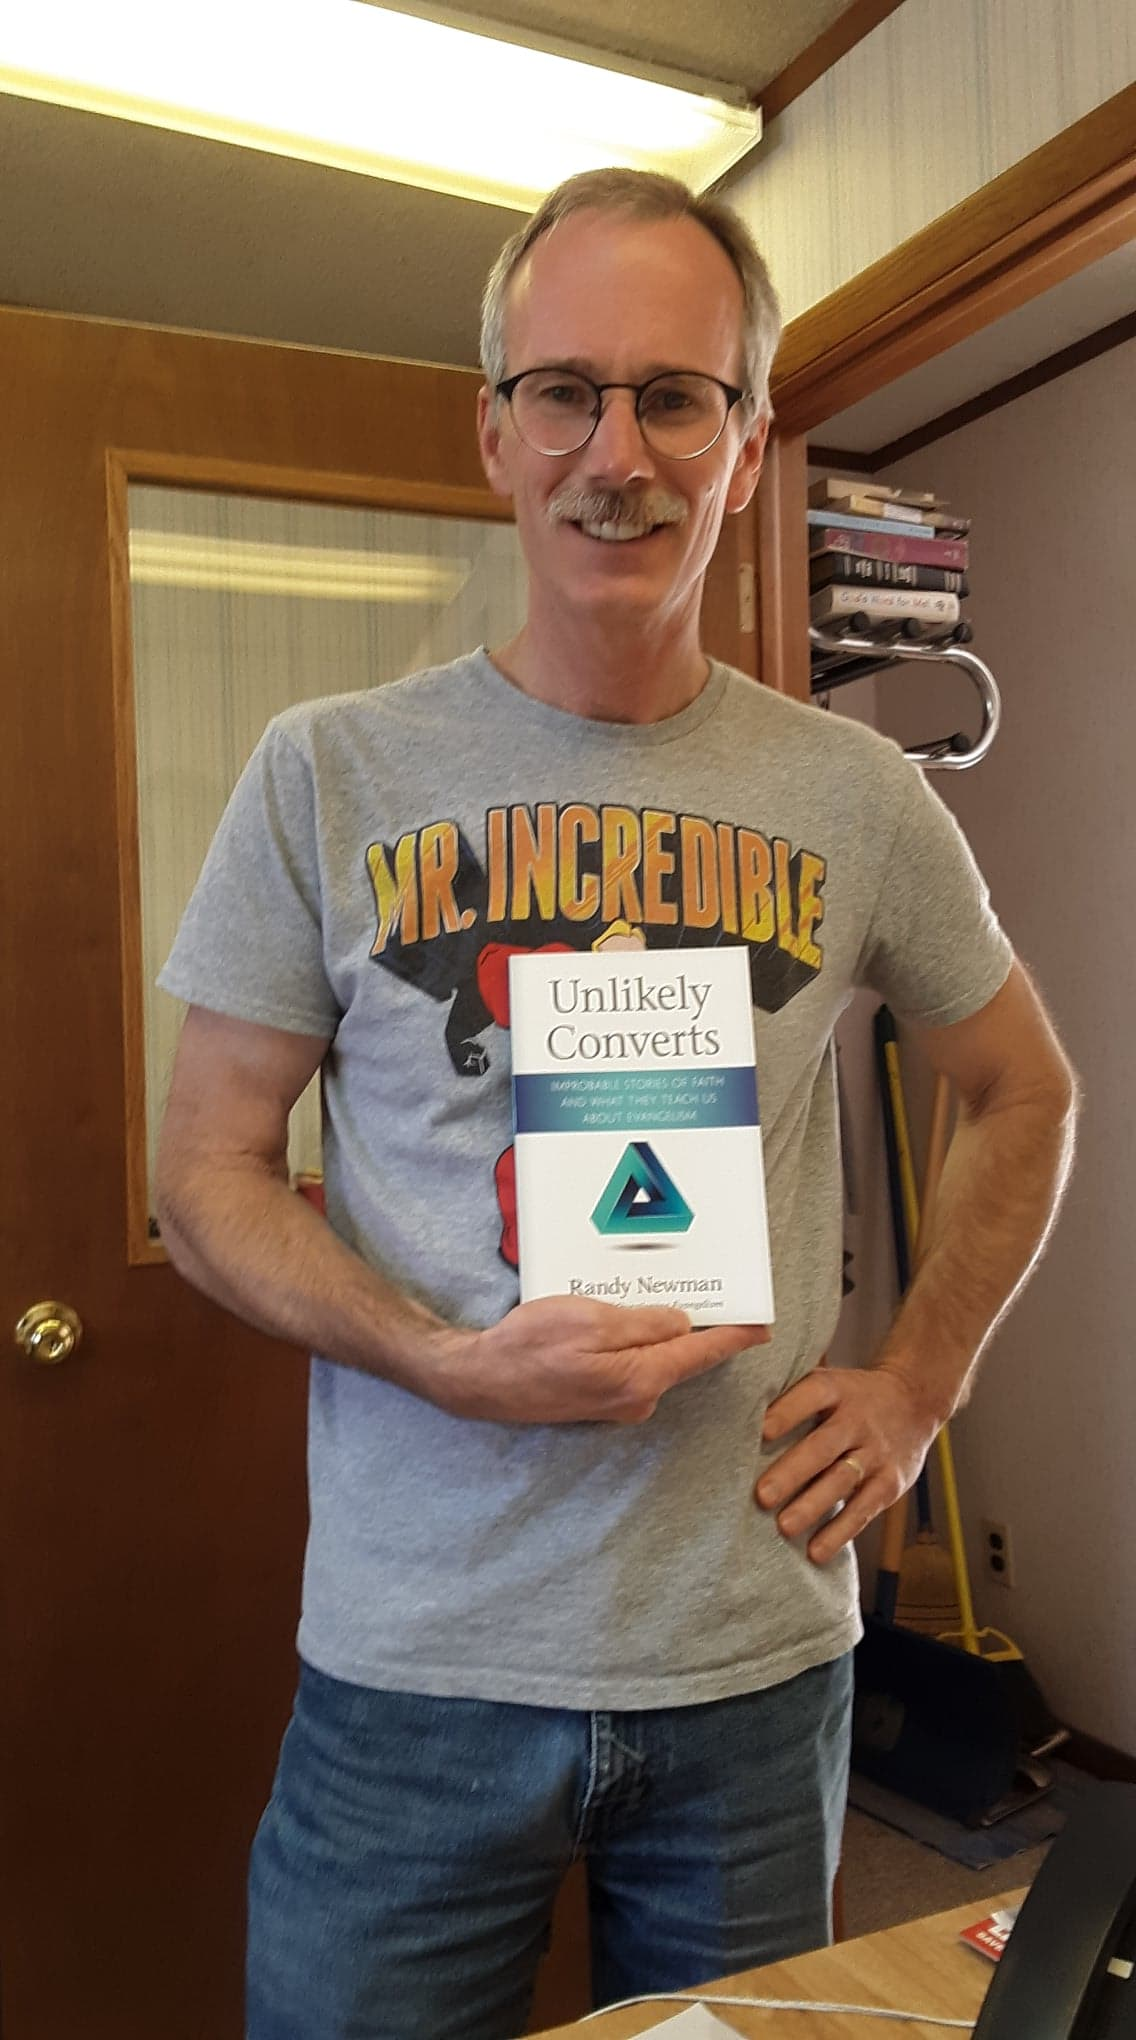 Russ shows off Unlikely Converts, authored by today's Coffee Break guest Randy Newman.